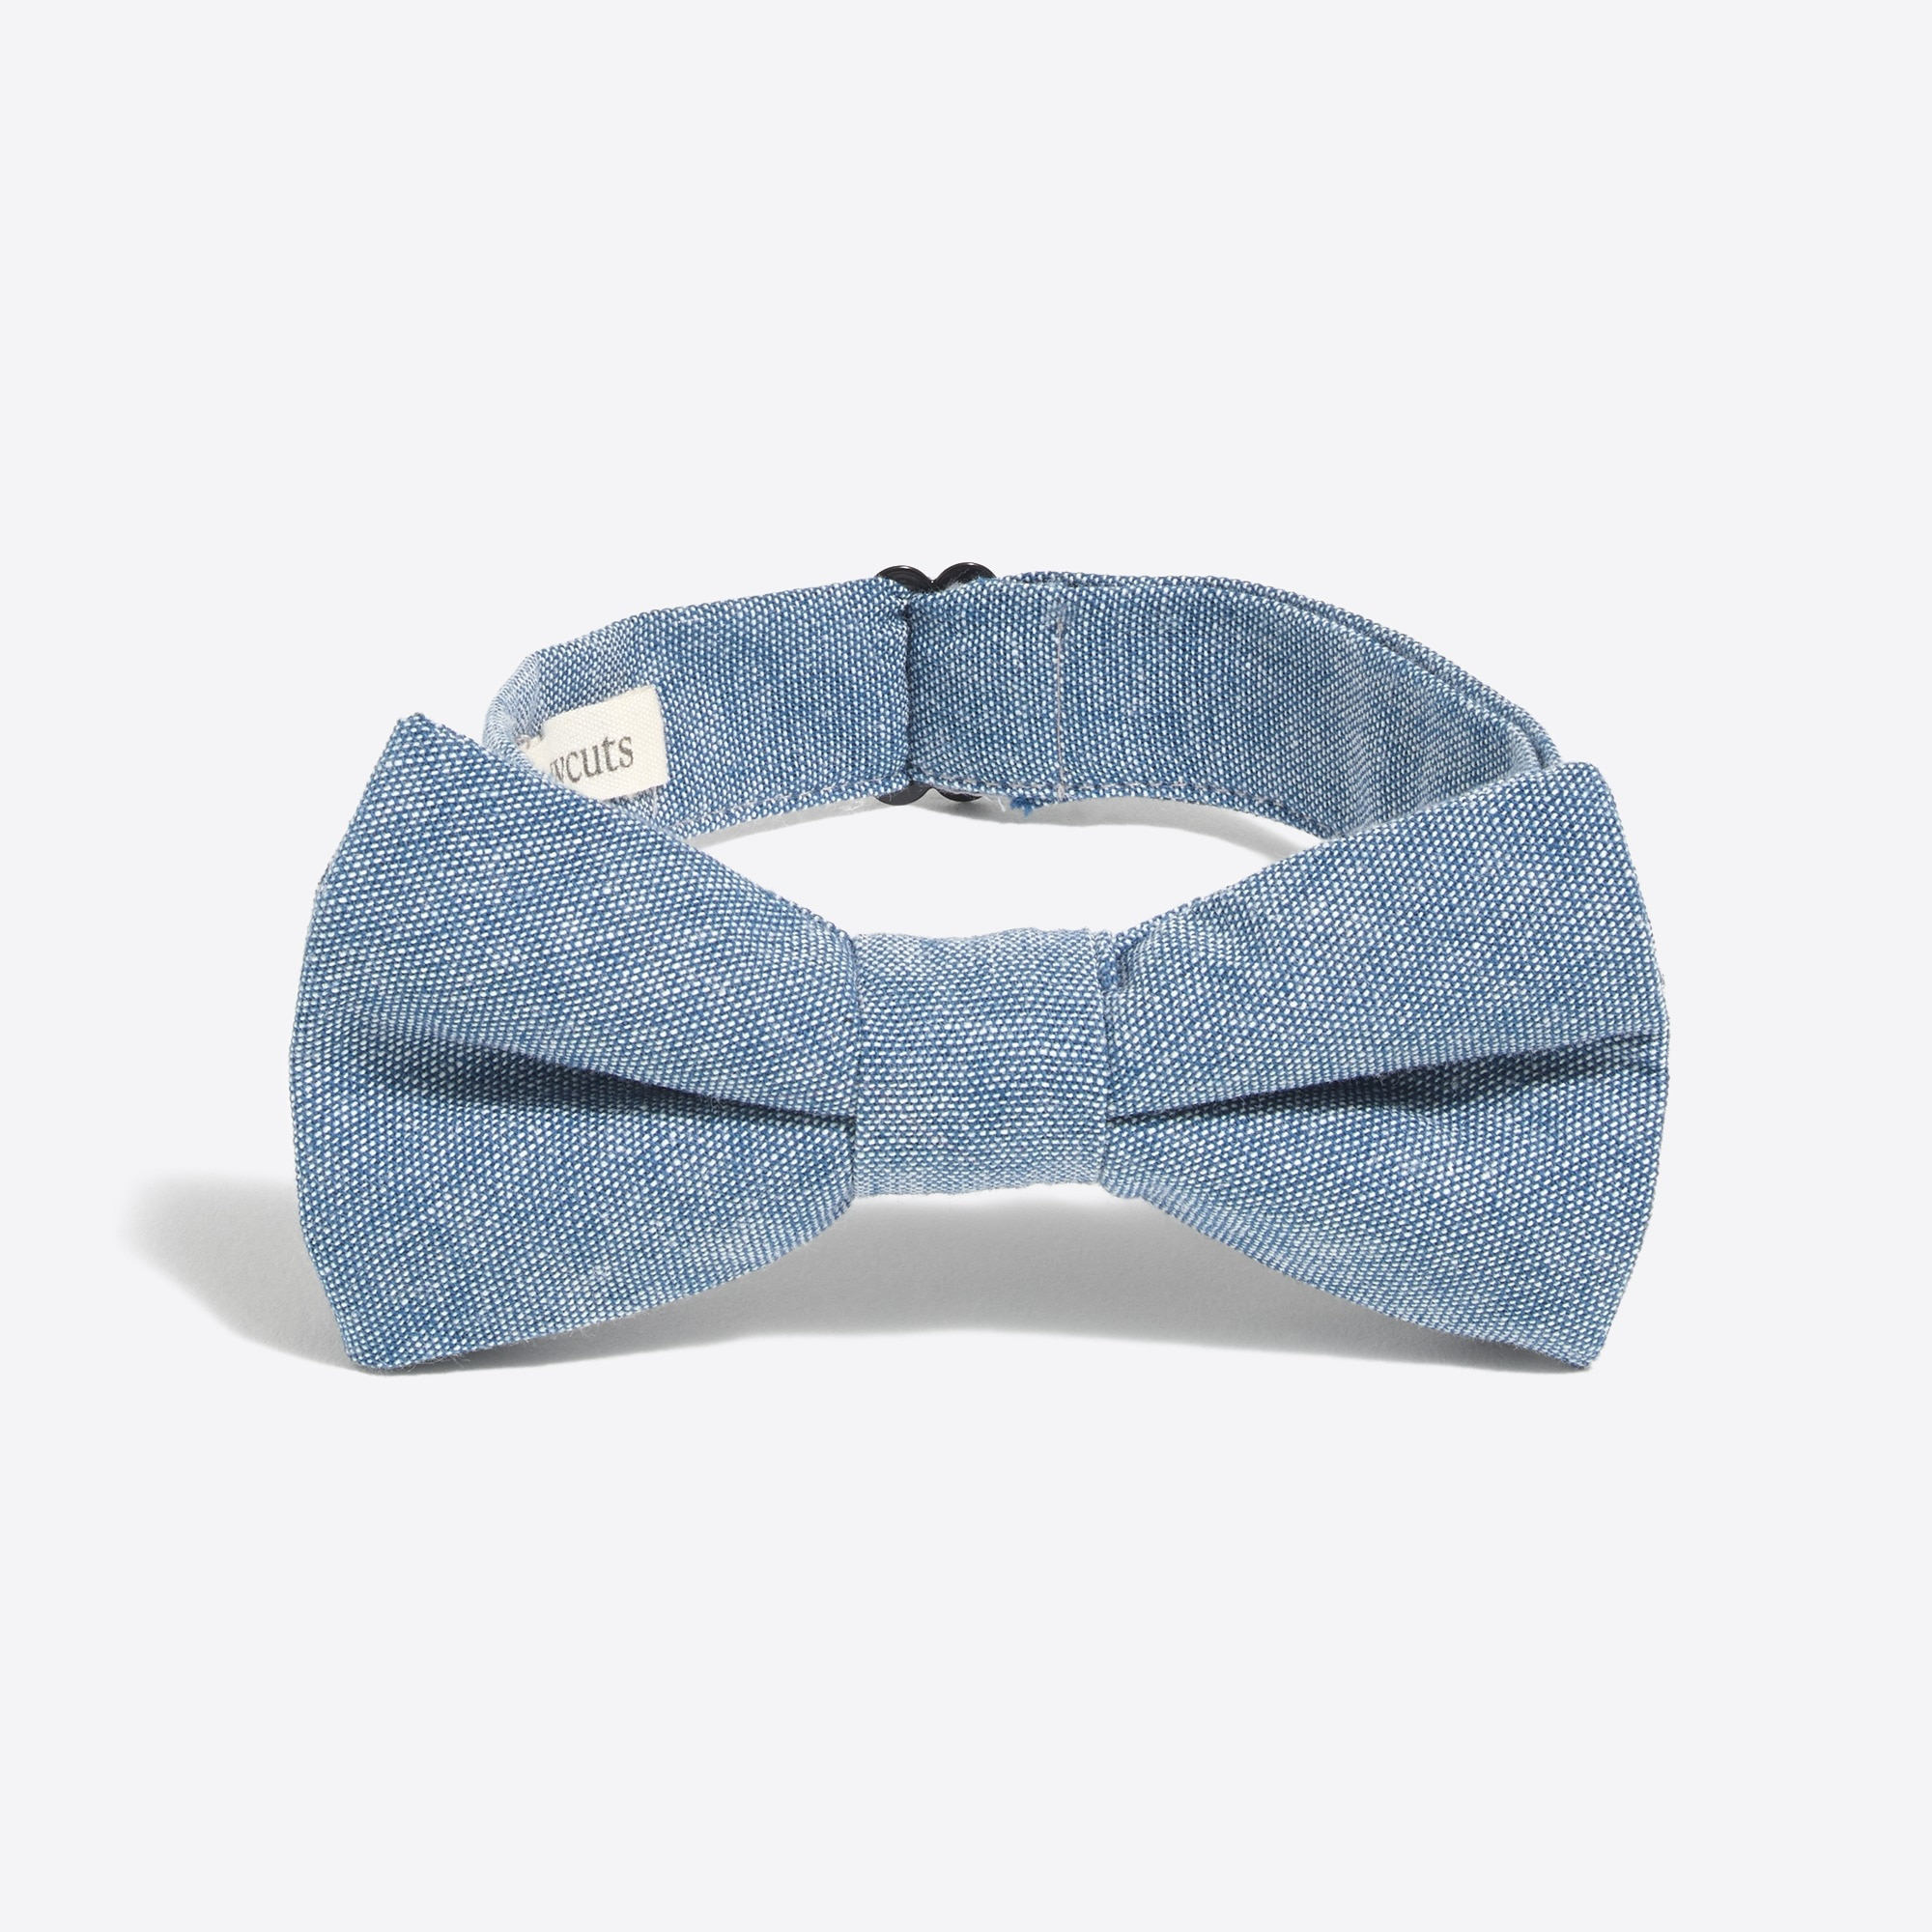 Boys' chambray bow tie factoryboys ties & accessories c